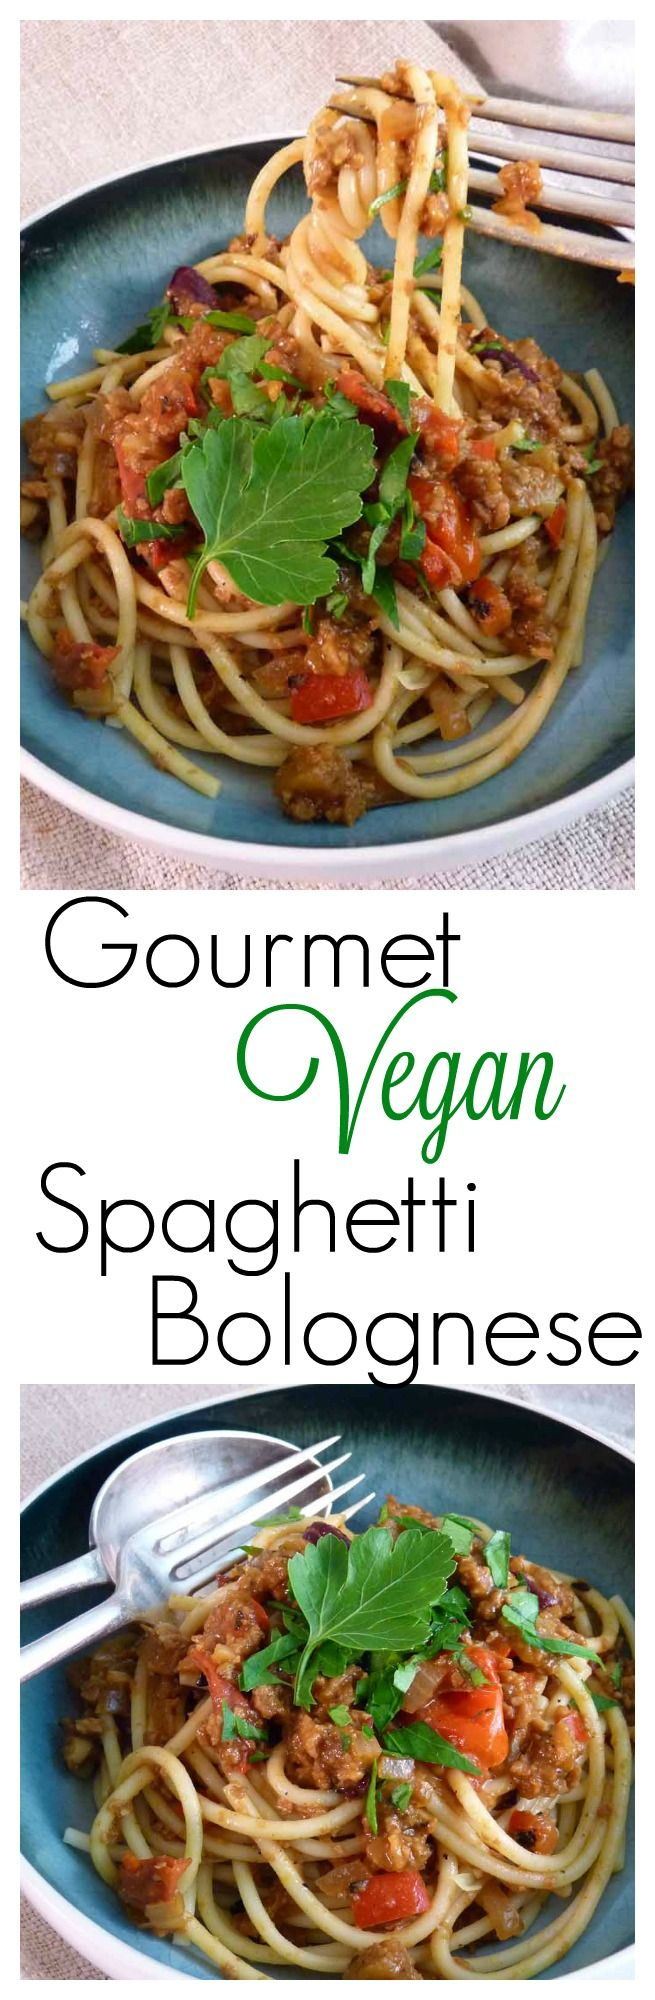 This easy vegan bolognese recipe is a family favourite. With extra veggies snuck in and a rich flavourful sauce.  This recipe will be happily eaten up by veggies and non-veggies alike, making it the perfect quick vegan dinner for everyone!